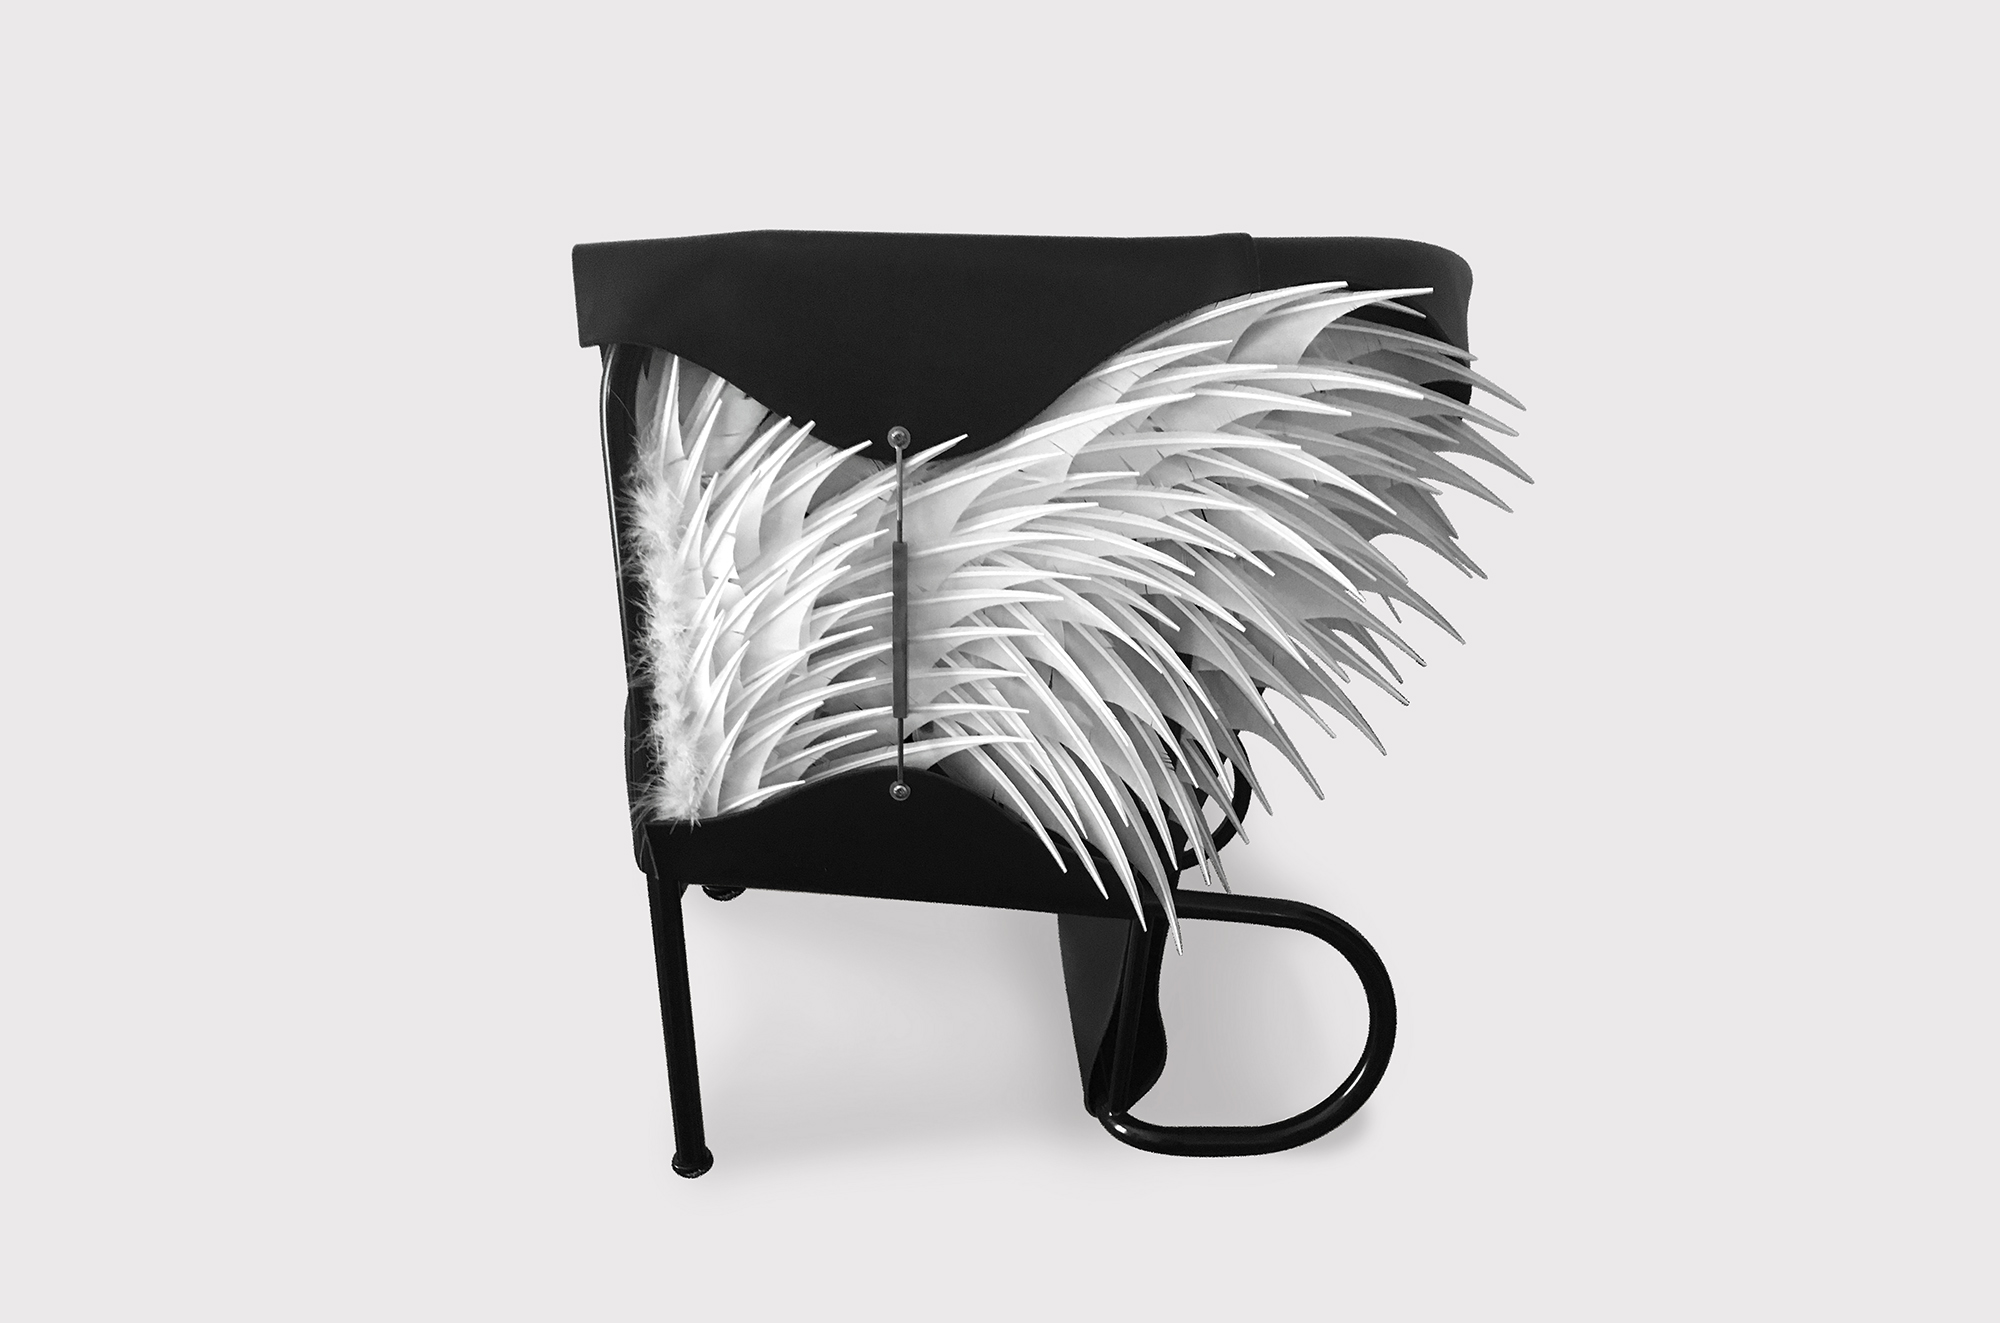 Club Lounge Chair - Accoutre N.2 - In the first edition of the 'Club Chair' (2016) the designer Glen Baghurst drew inspiration from high fashion and English saddlery and applied this to create his leather draped armchair.